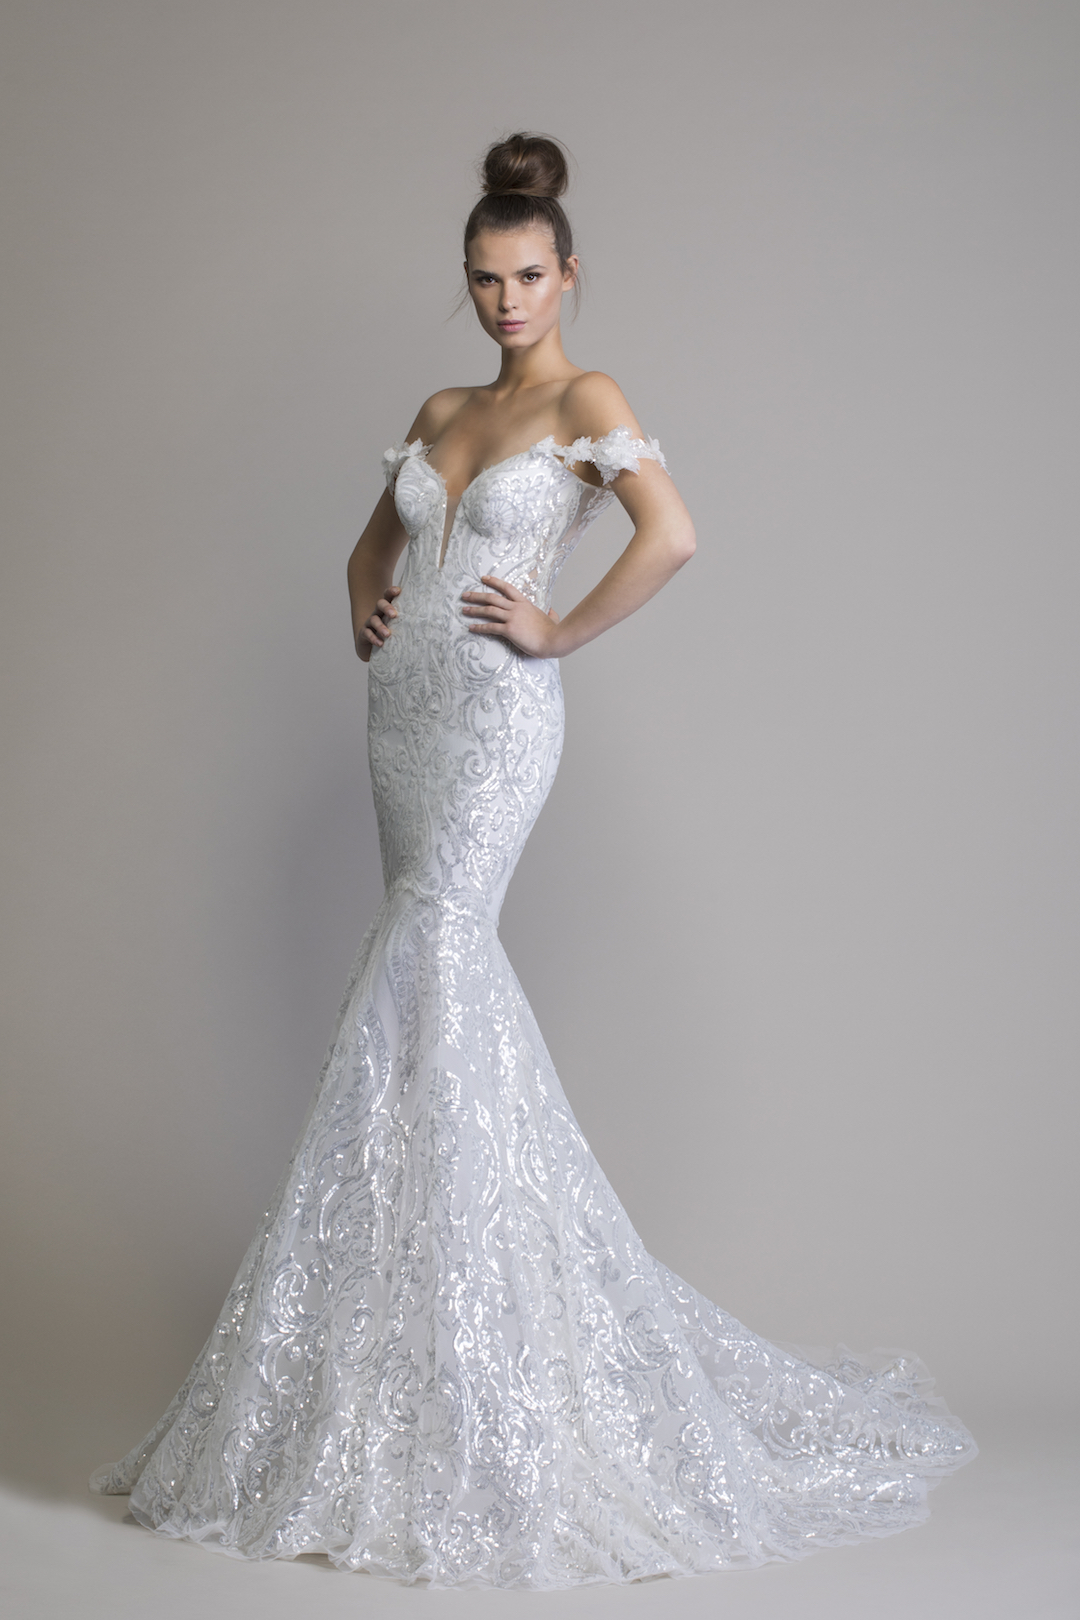 Pnina Tornai's new LOVE 2020 Collection is out! This is style 14753